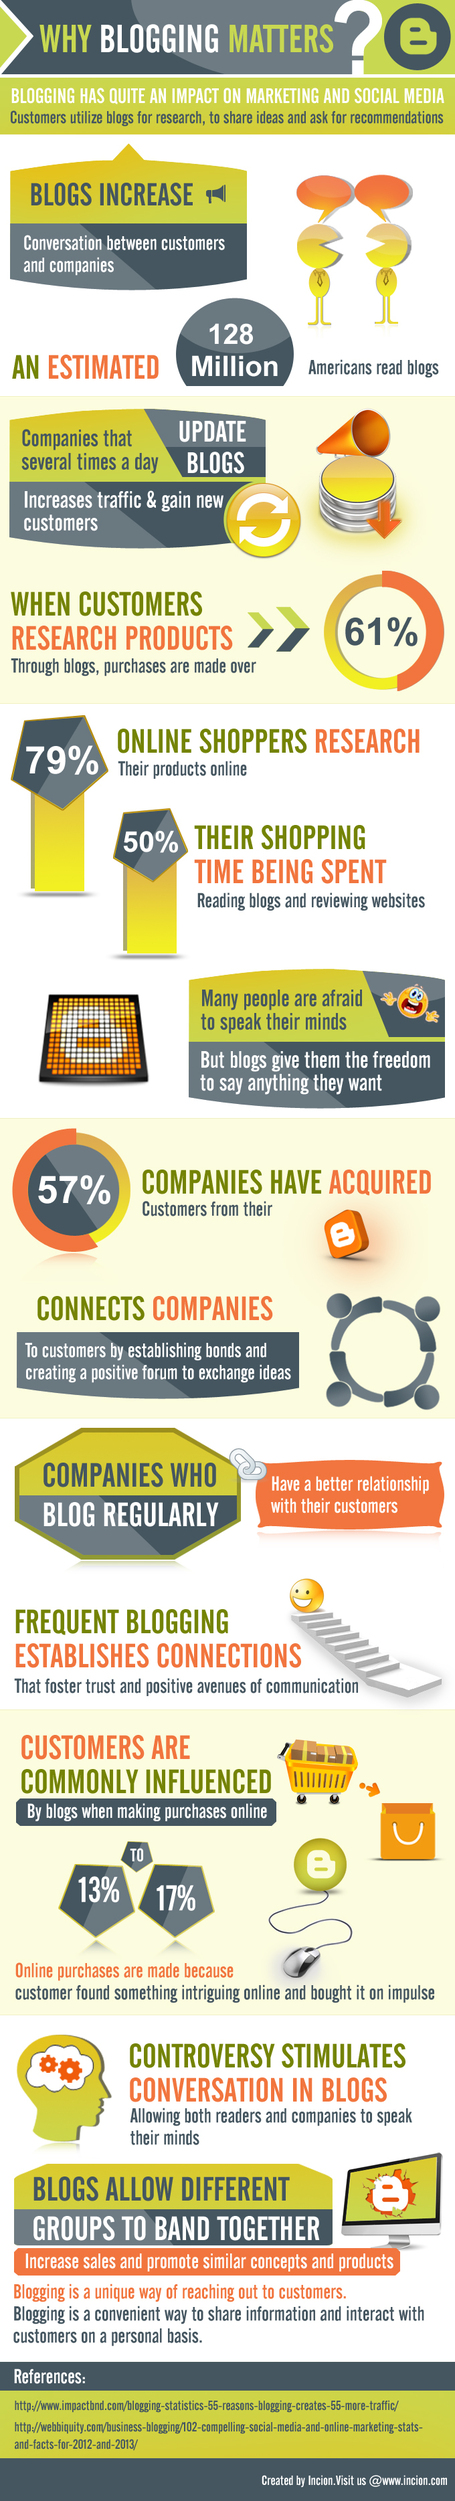 Why Blogging MATTERS [Infographic] | Social Media e Innovación Tecnológica | Scoop.it